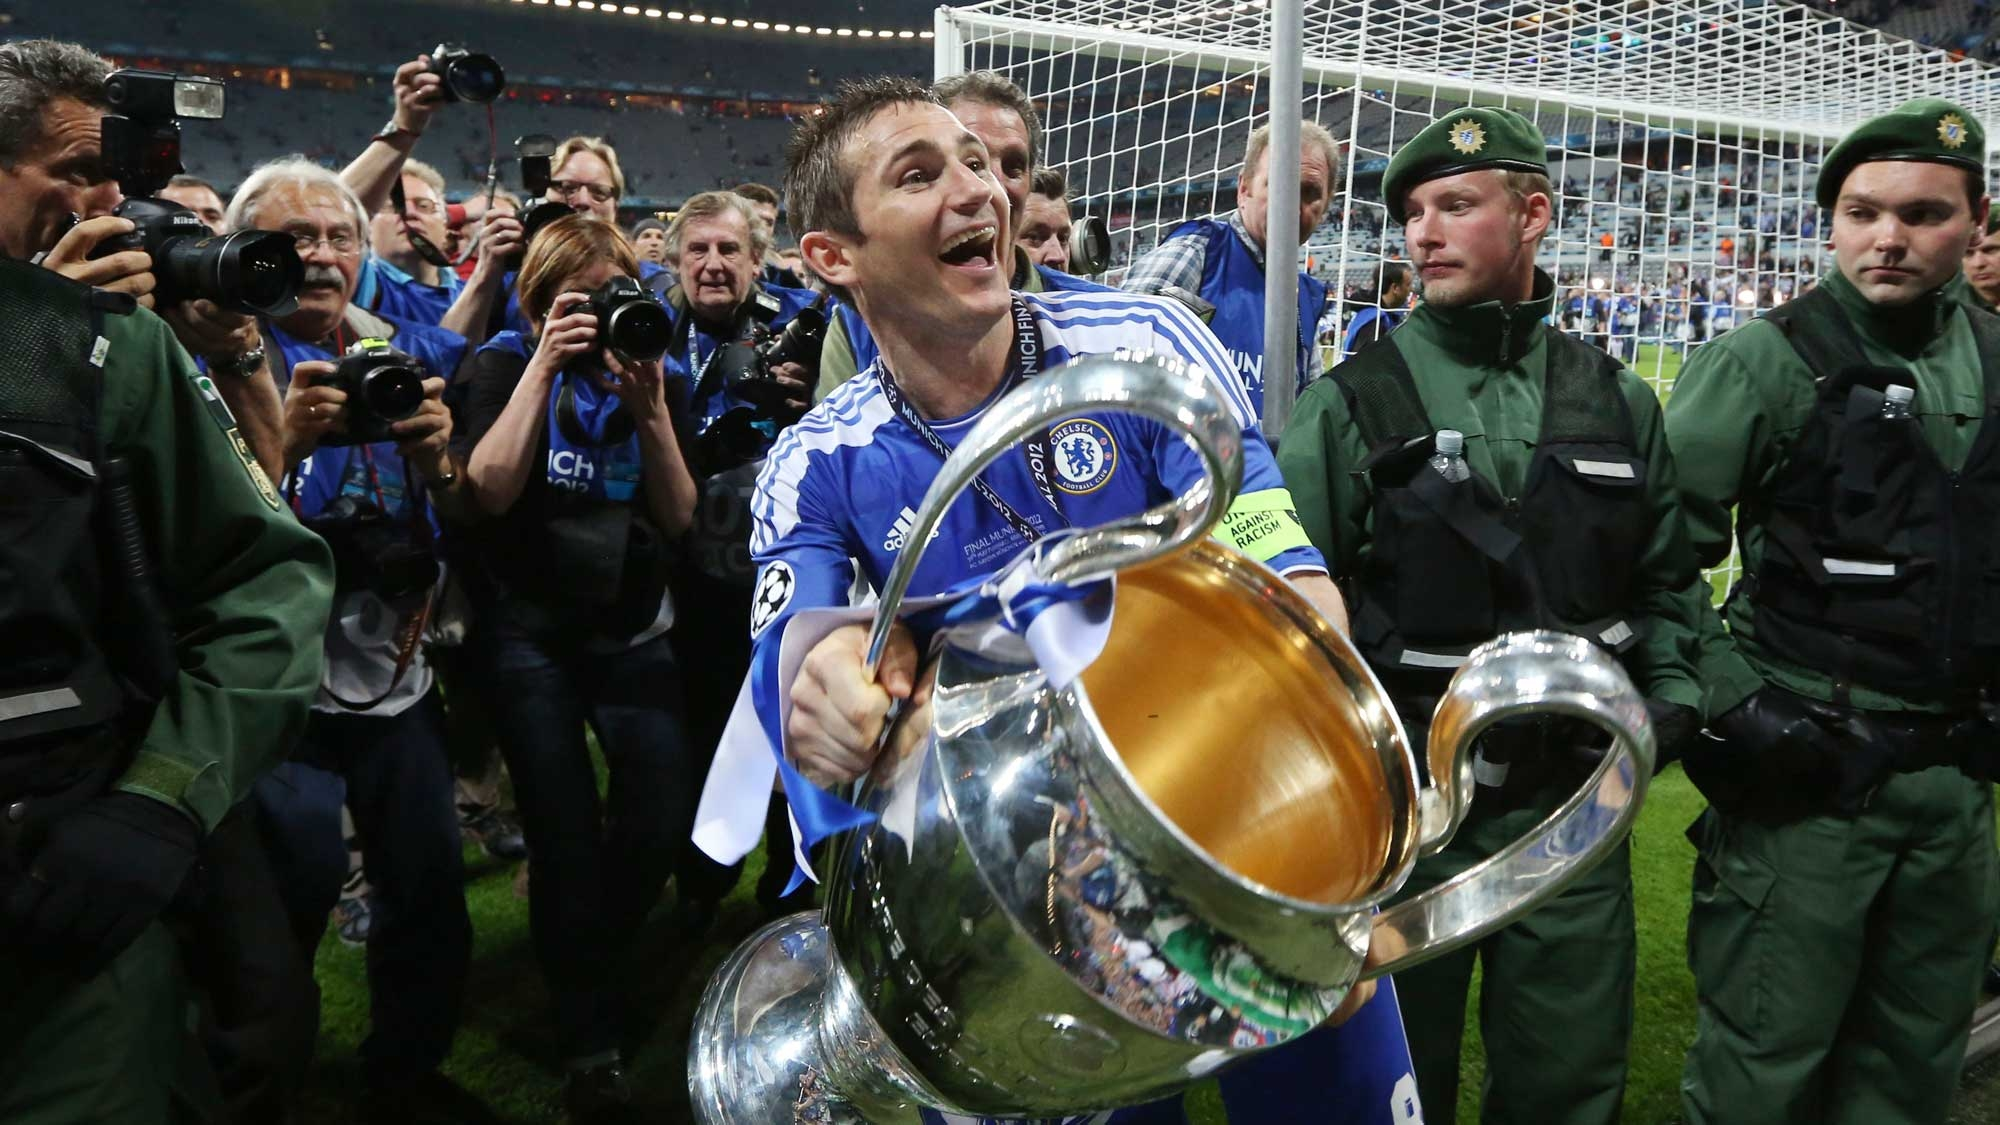 Former England and Chelsea Midfielder Frank Lampard Retires at 38